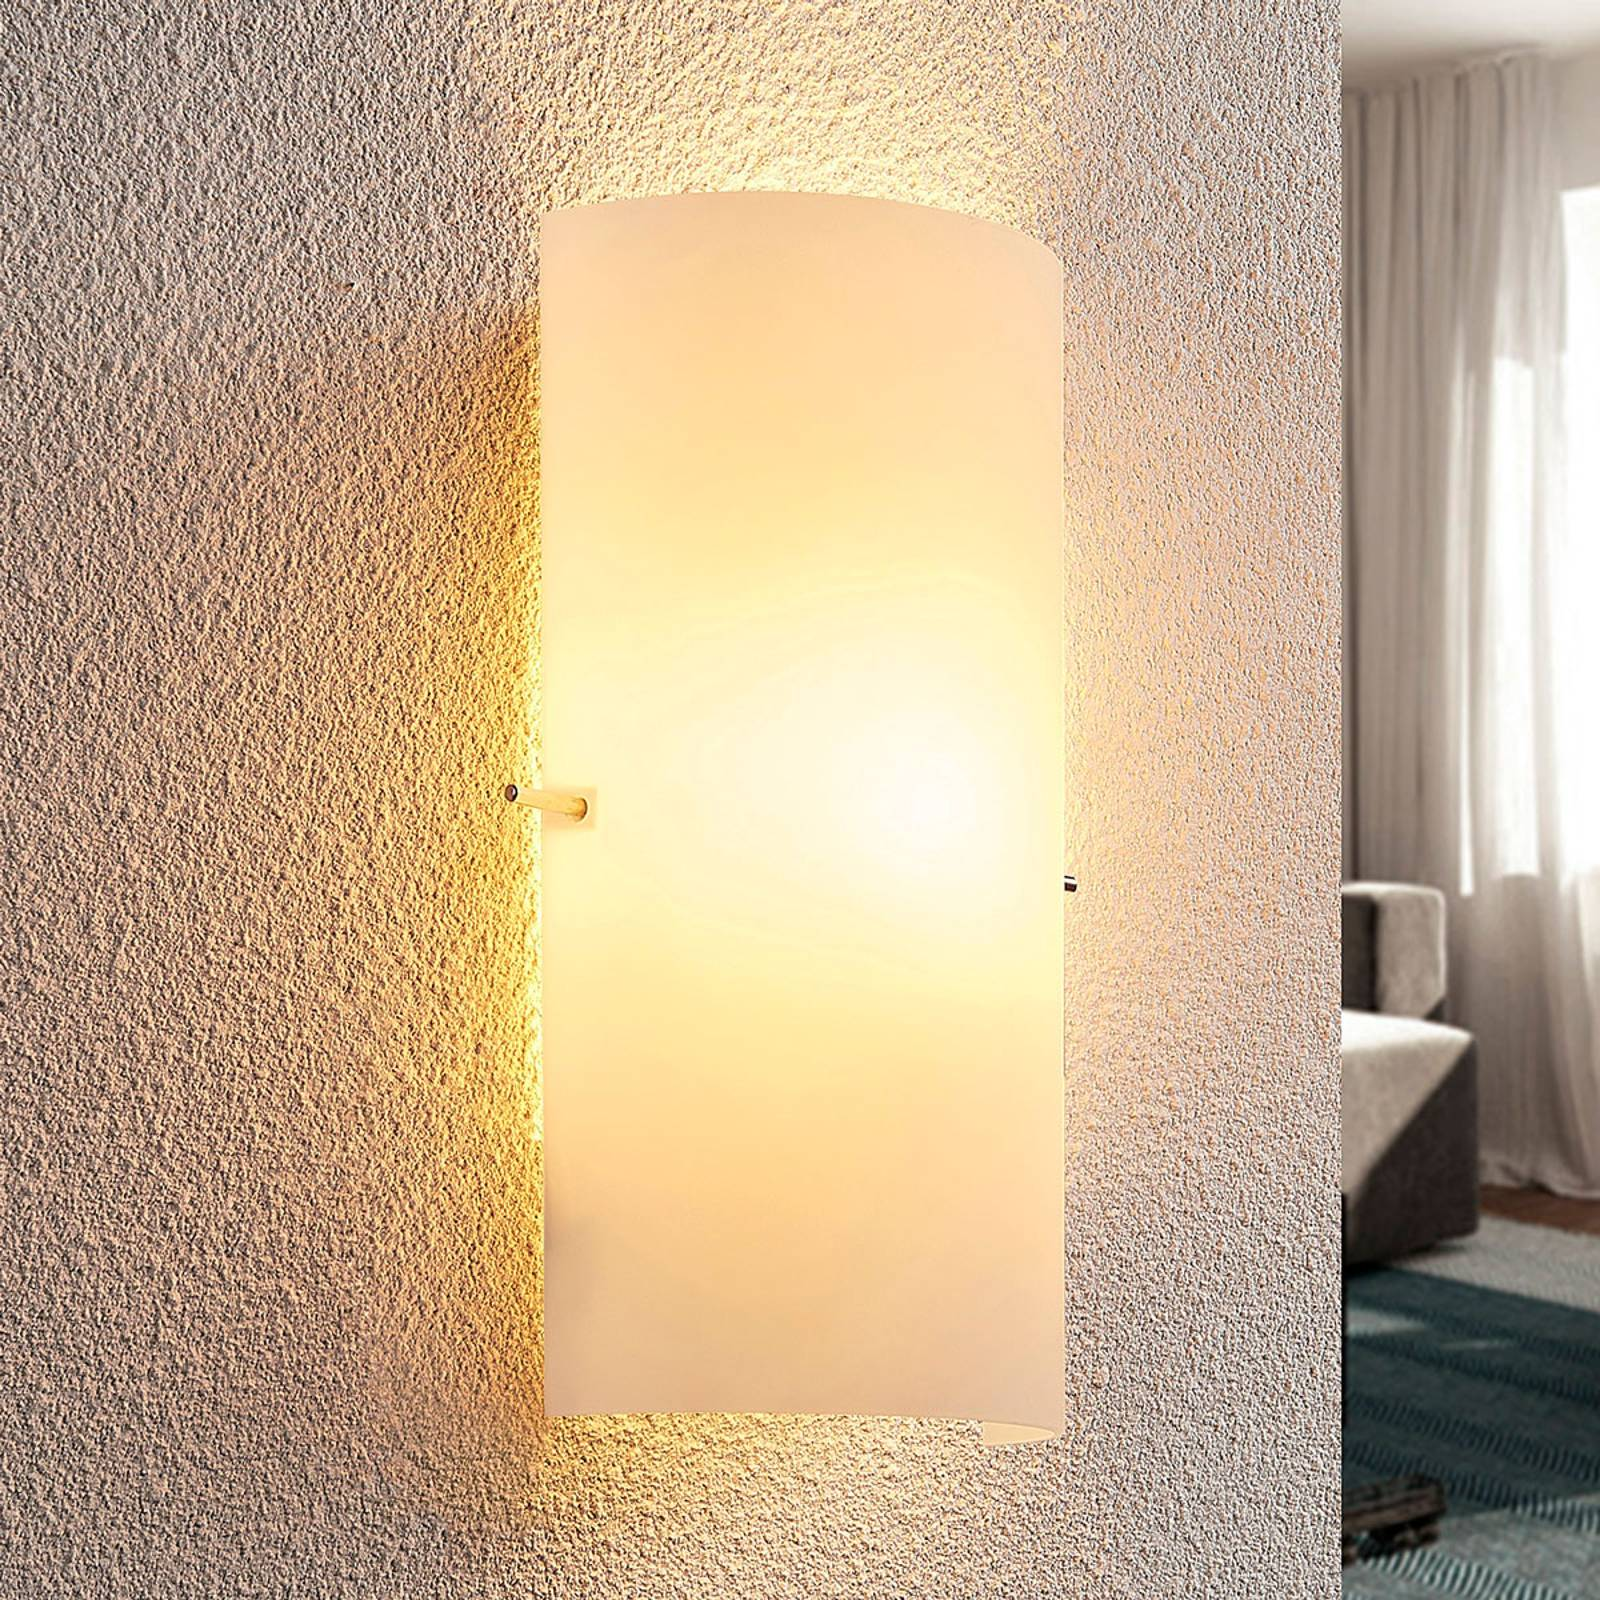 Timelessly attractive glass wall light Tuli from Lindby